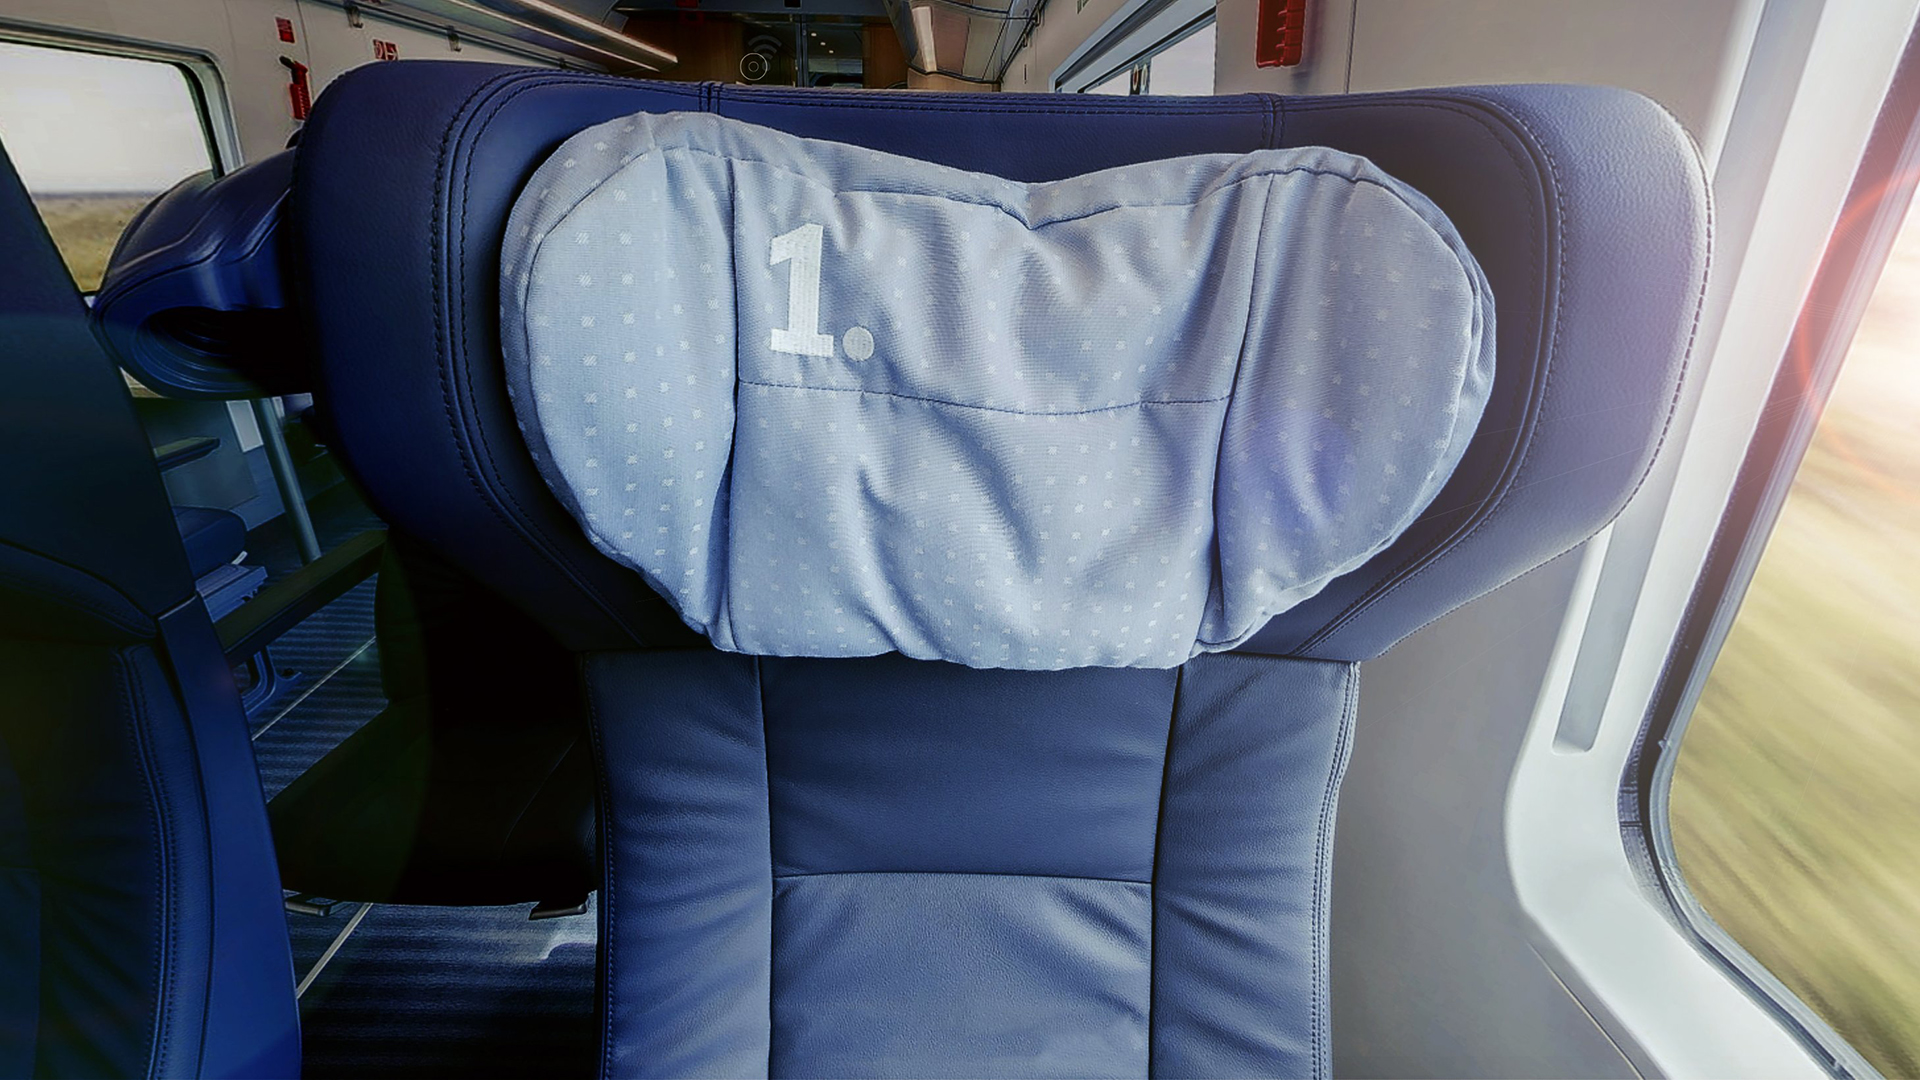 Deutsche Bahn ICE 4 train first class seat. Virtual background to use on Zoom, Microsoft Teams, Skype, Google Meet, WebEx or any other compatible app.